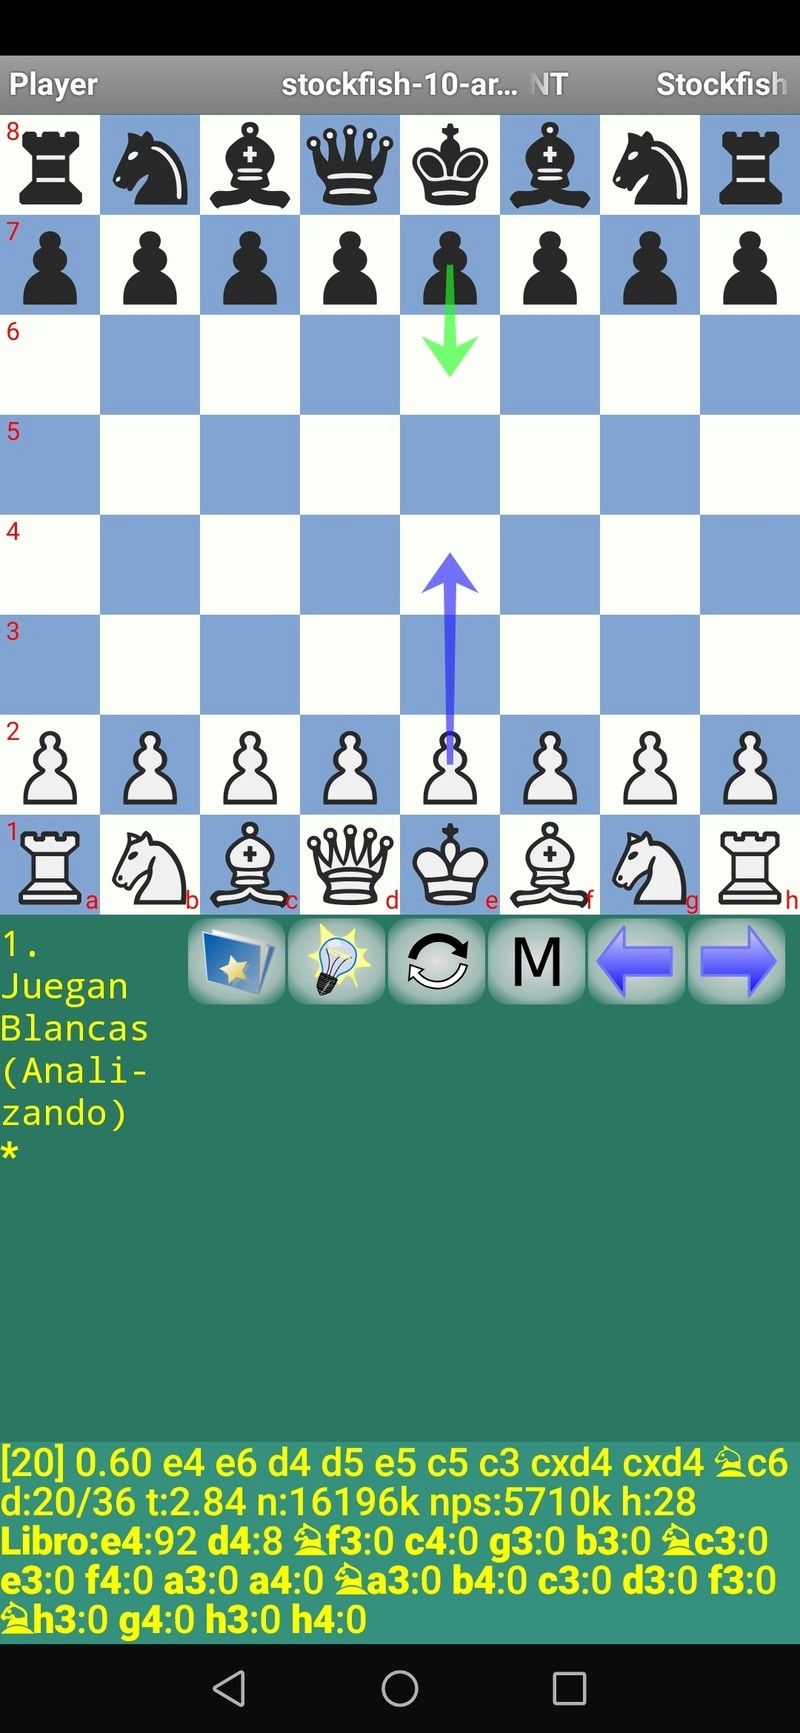 Stockfish 10 Android en el Mate 20 Pro de QUIJOTEL. ¡¡¡ Un pasote !!! Scree102